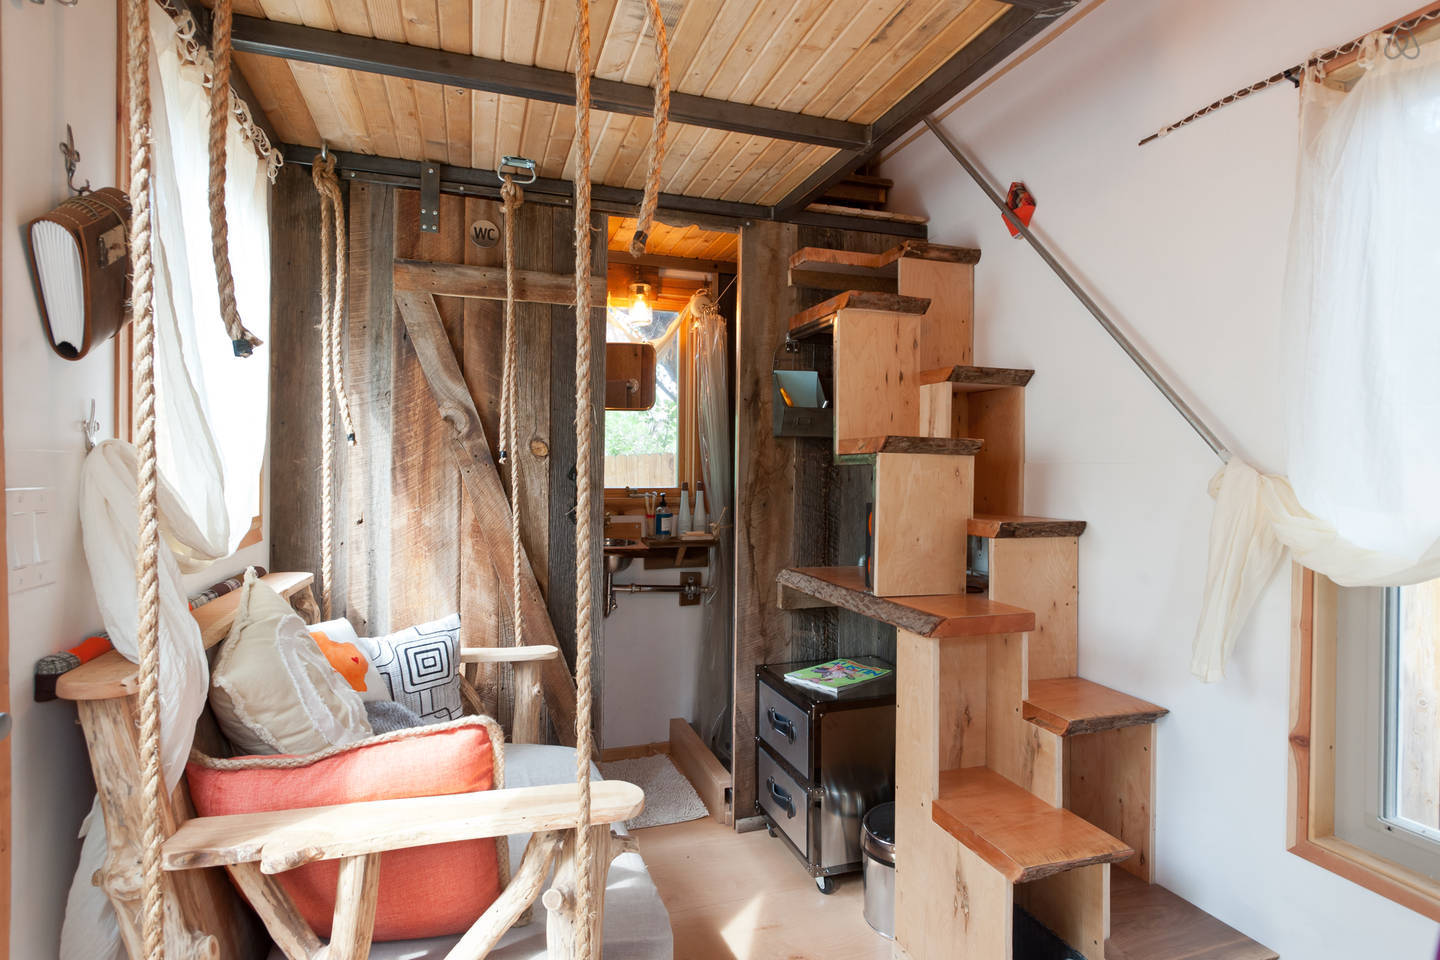 Small Homes Interior 16 Tiny House Interiors You Wish You Could Live In